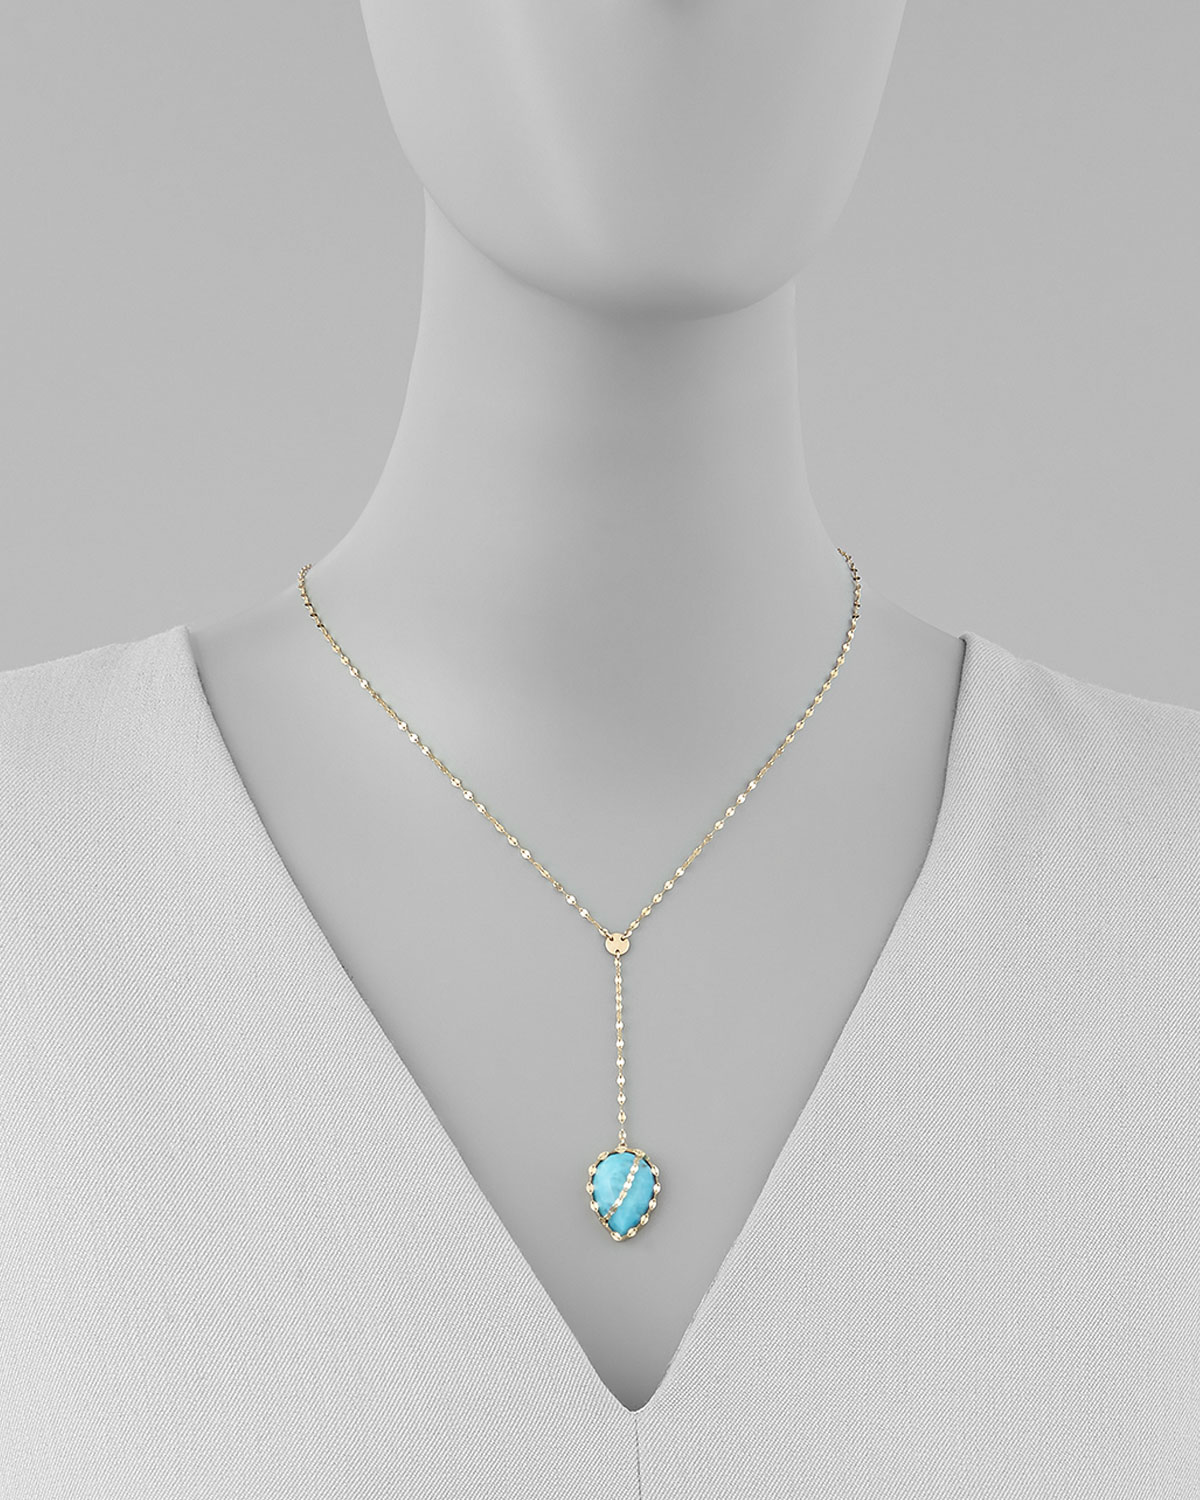 Lyst Lana Jewelry Turquoise Lariat Necklace in Metallic